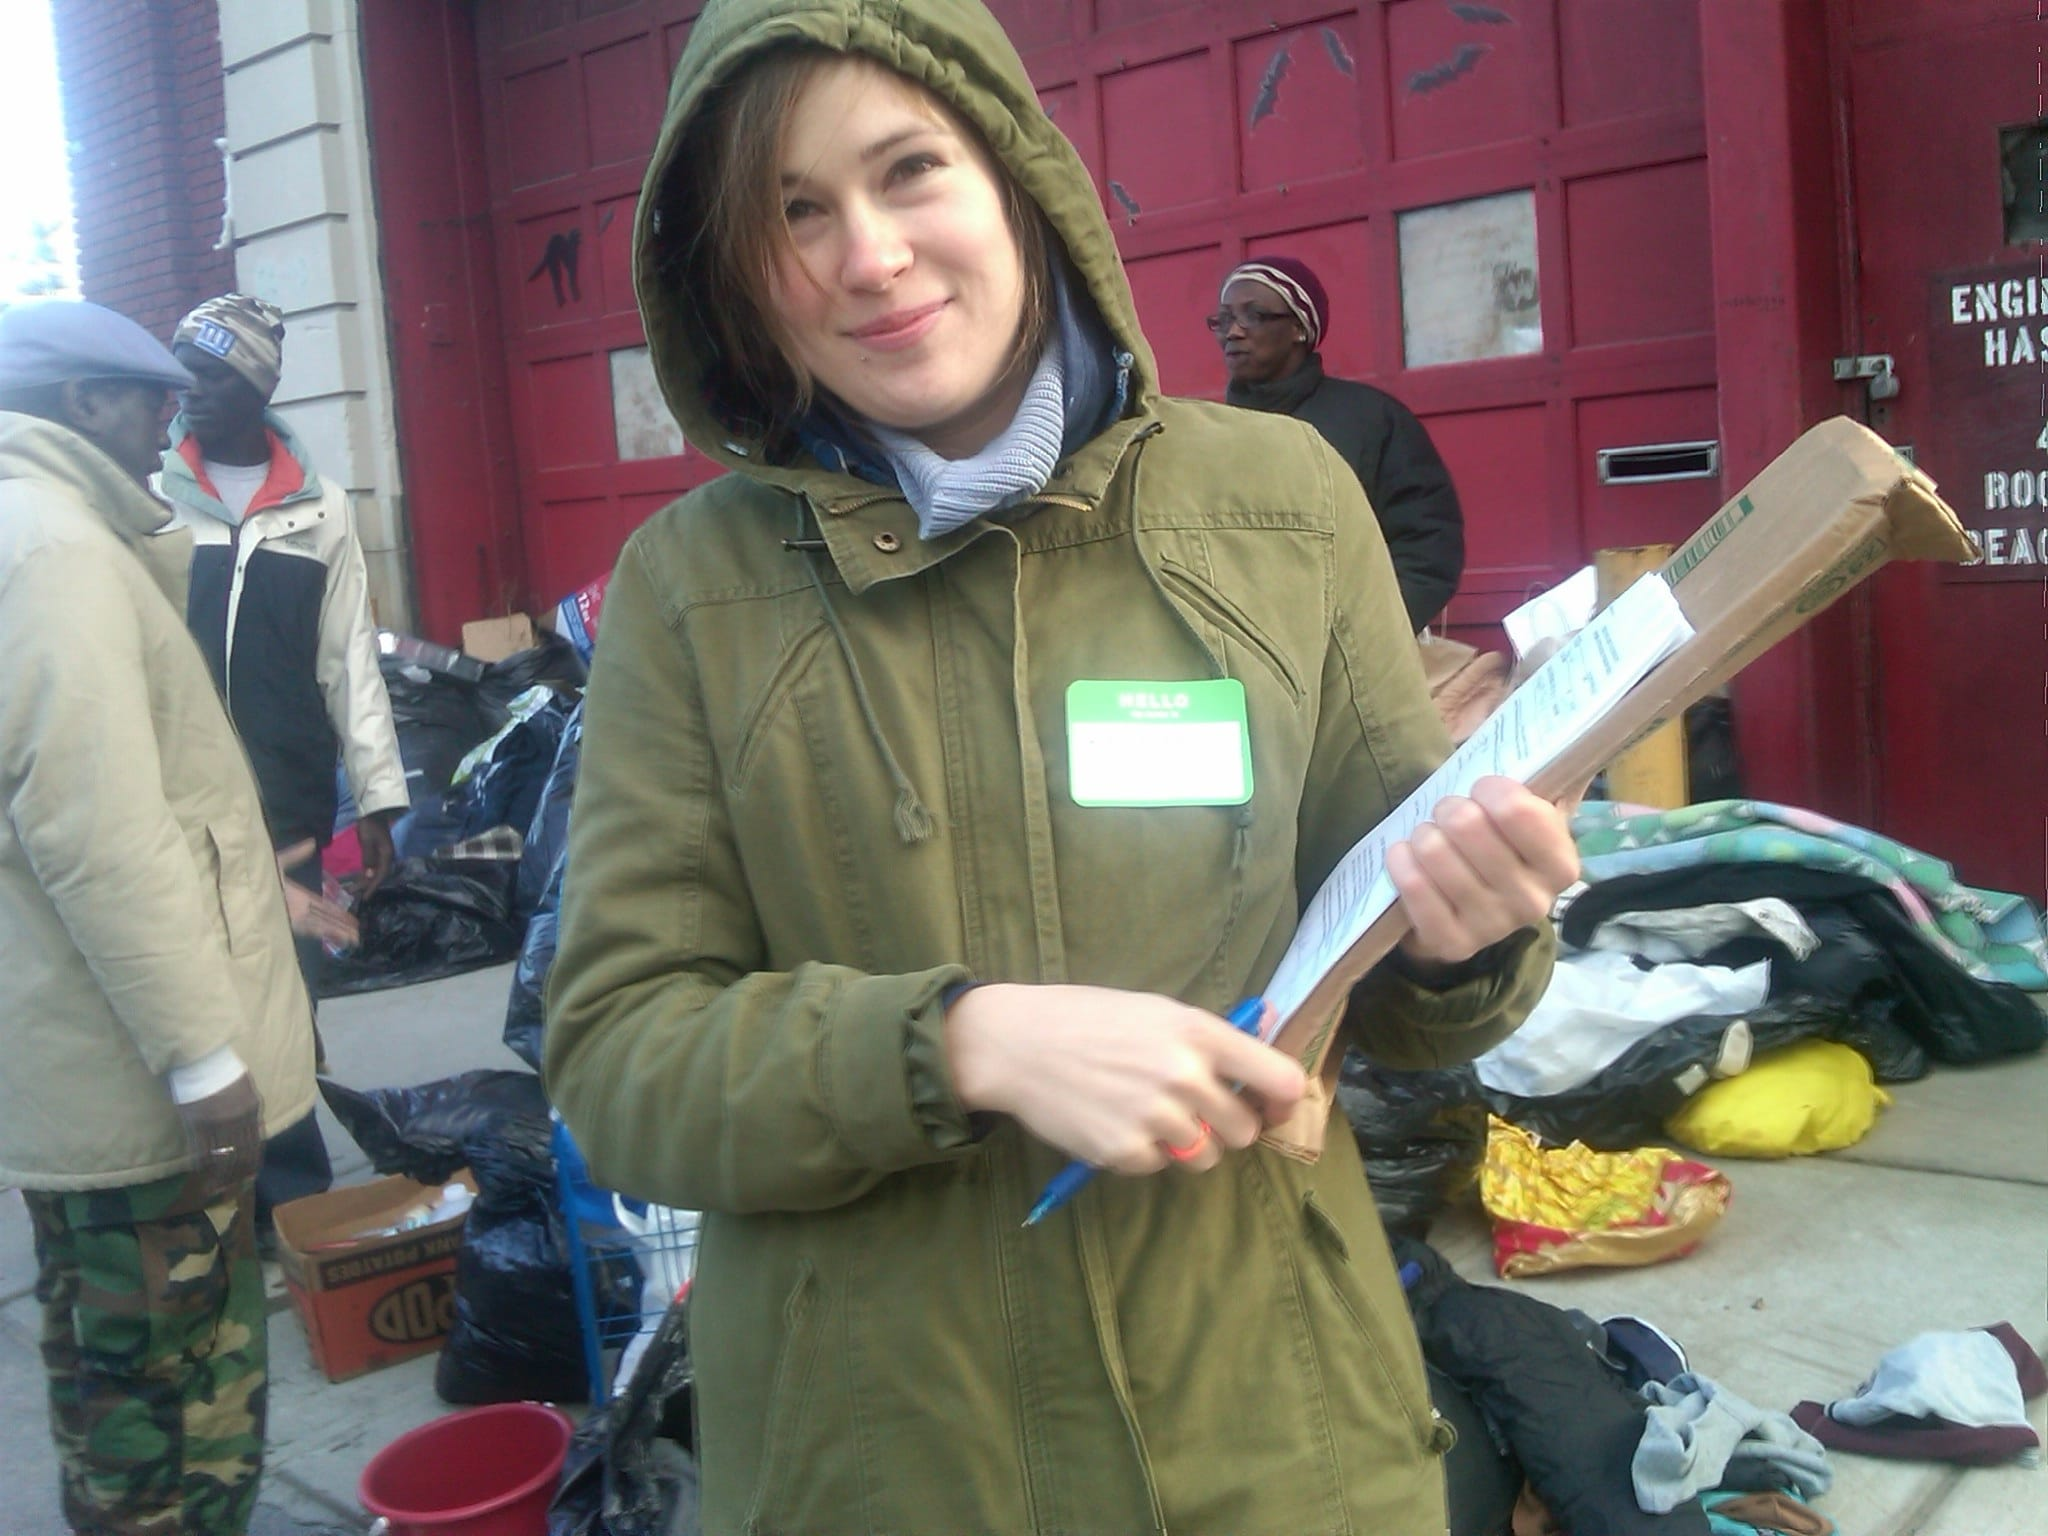 Hurricane Sandy volunteer. Signing people up for foodstamps.